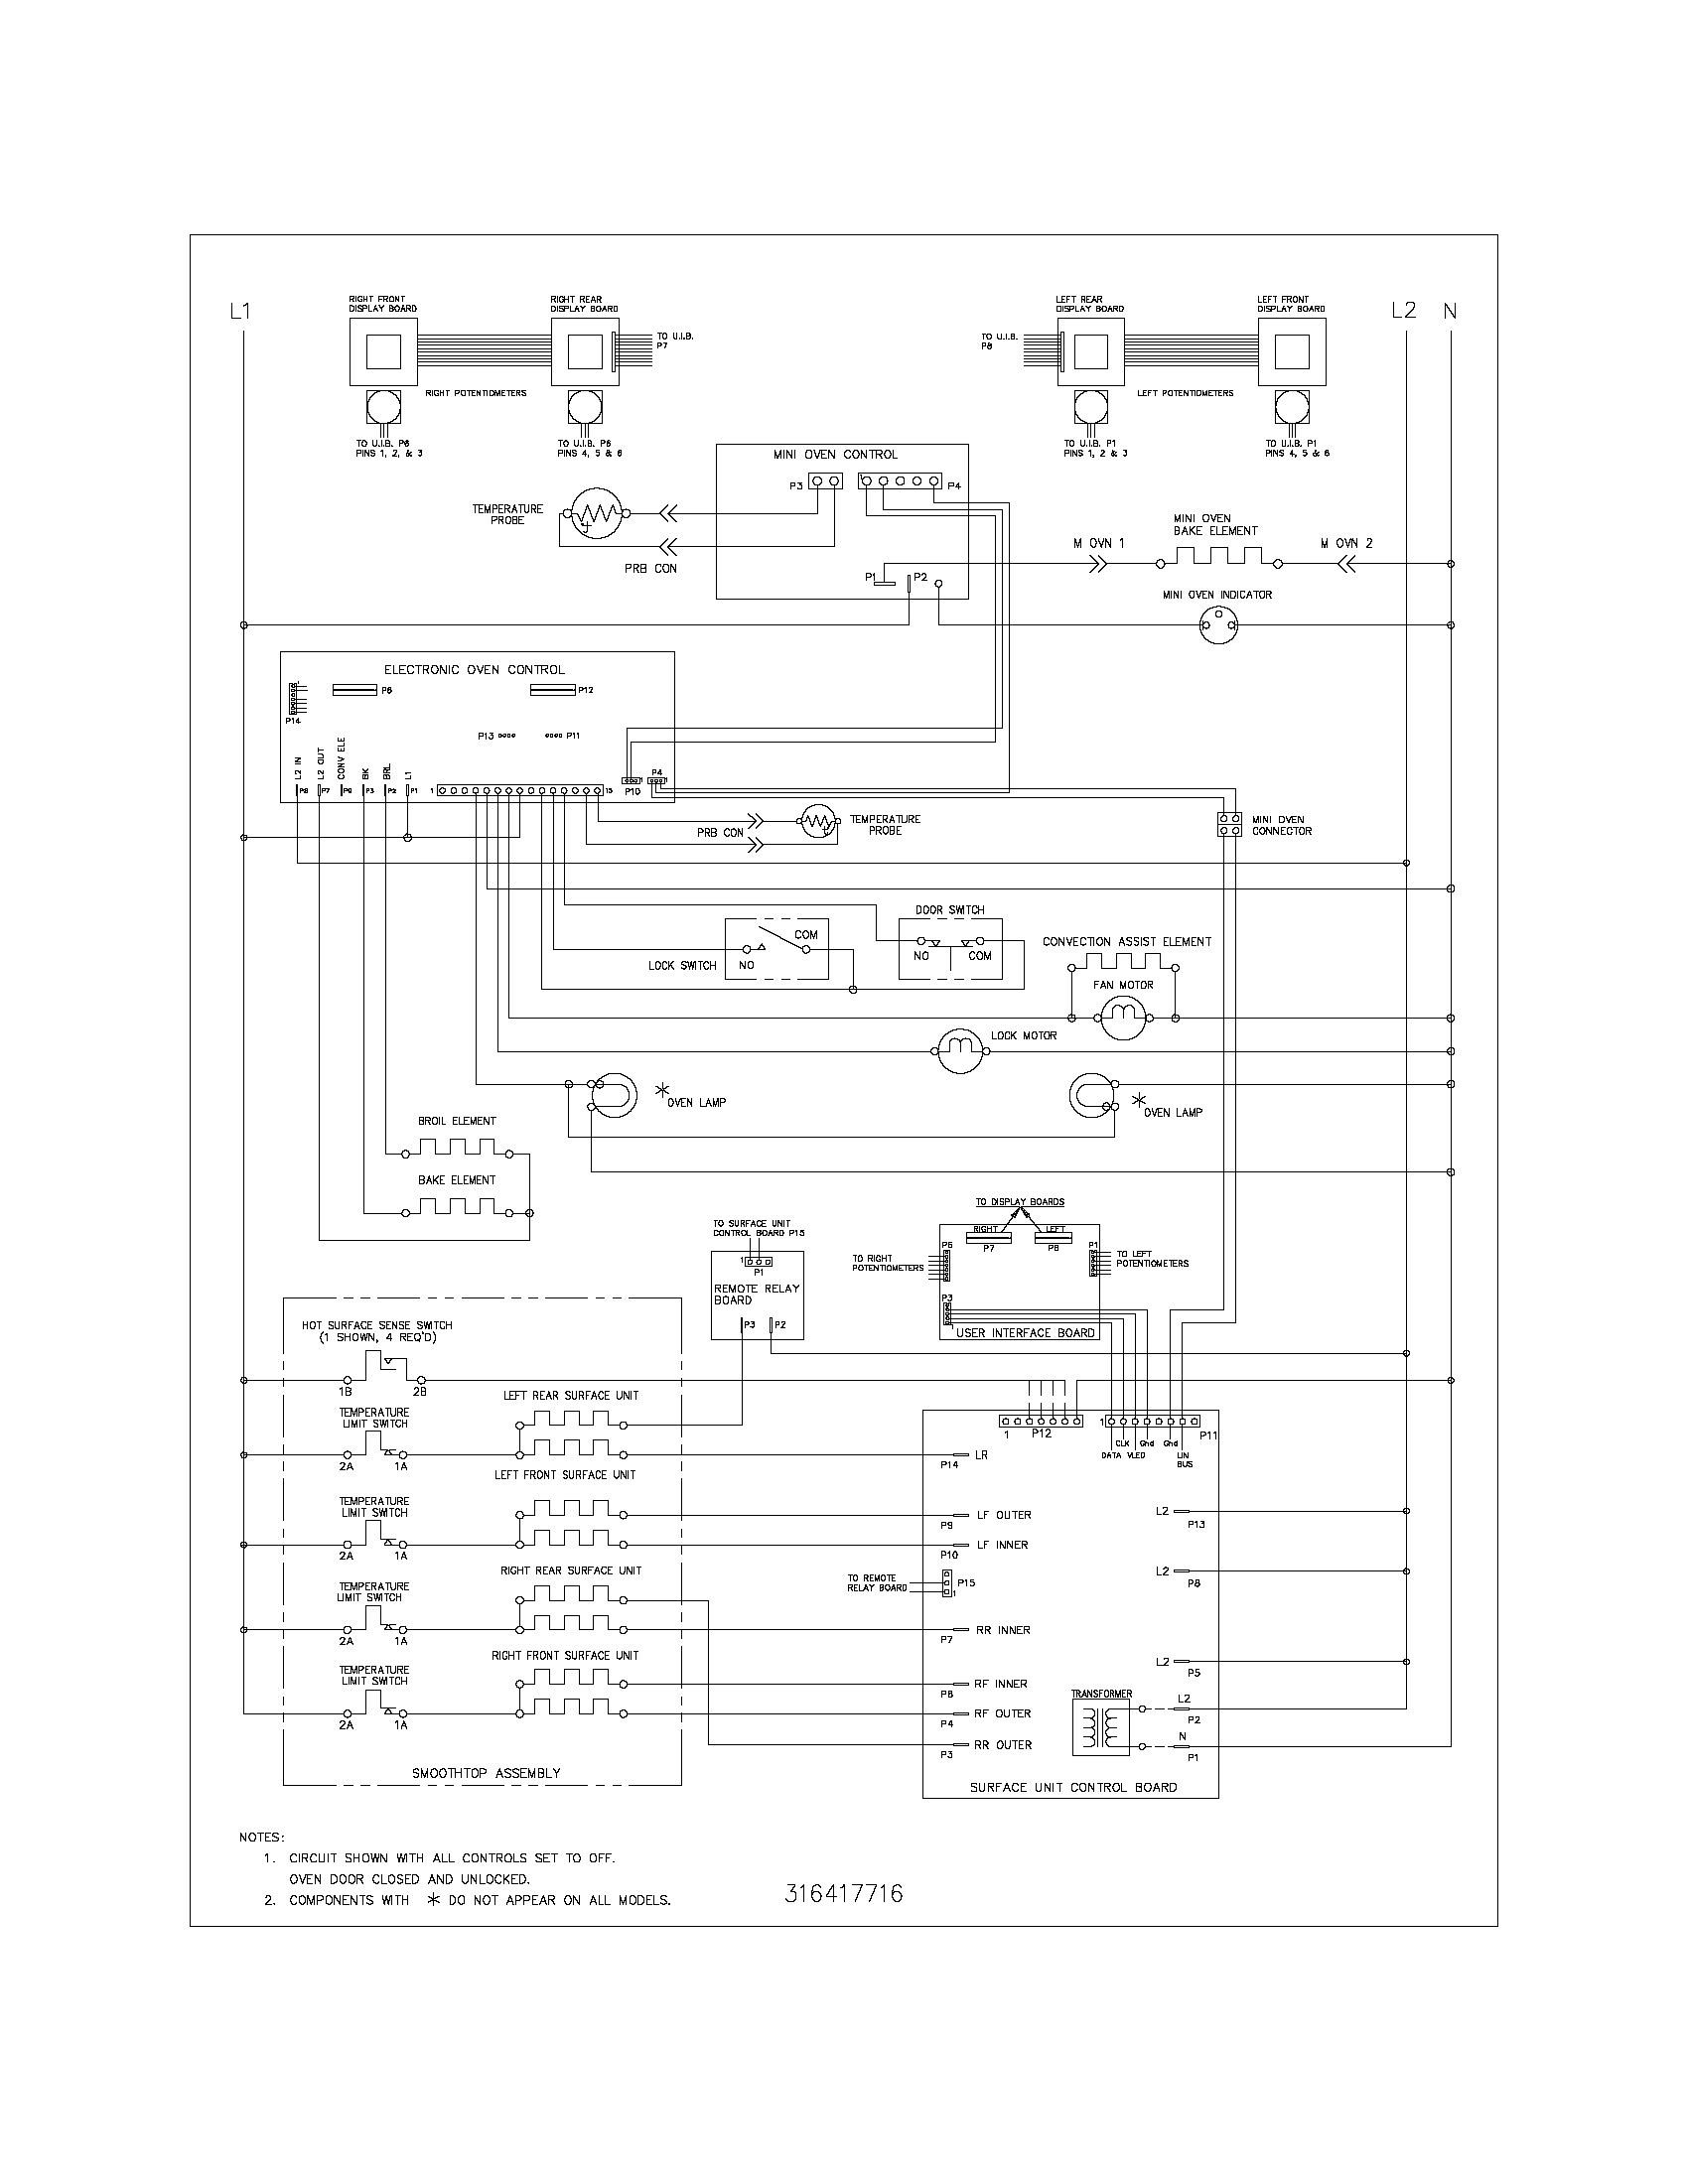 wiring schematic parts odes wiring diagram e z go wiring diagram \u2022 wiring diagrams j vespa vbb wiring diagram at gsmportal.co